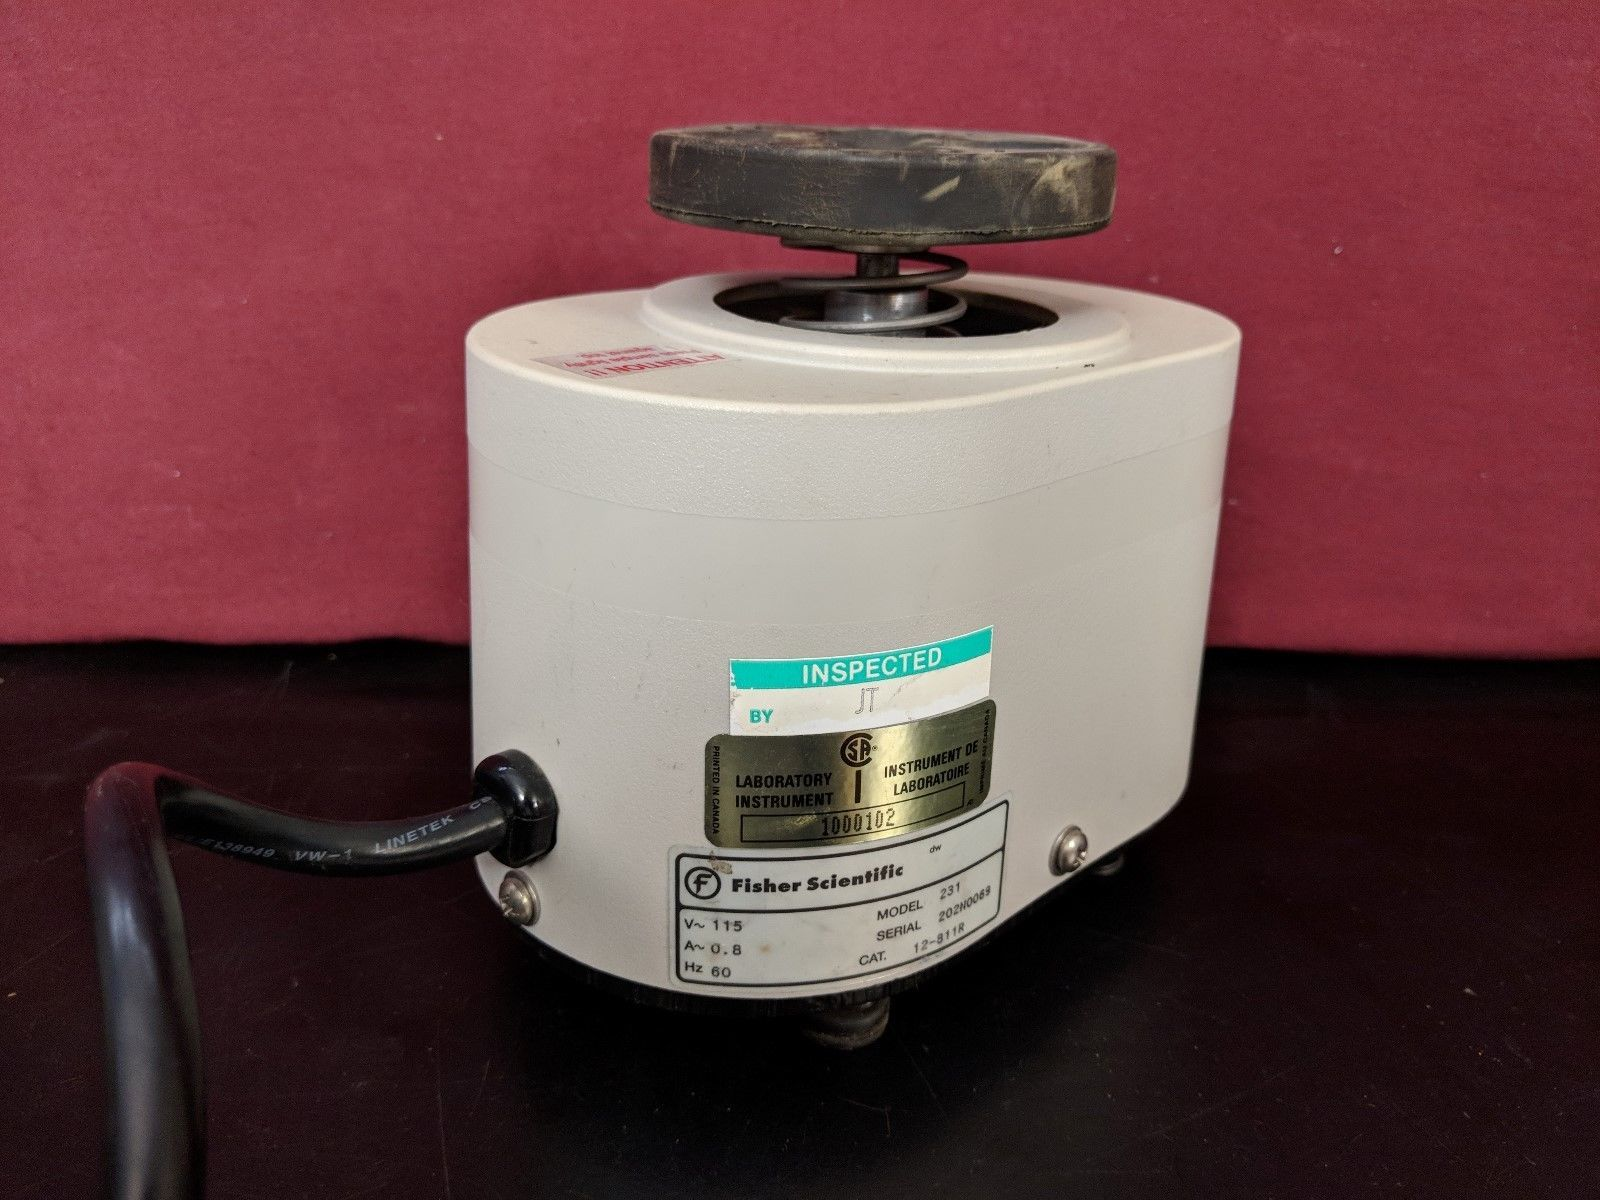 Fisher Scientific Variable Speed Vortex Touch Mixer Model 231 / TESTED